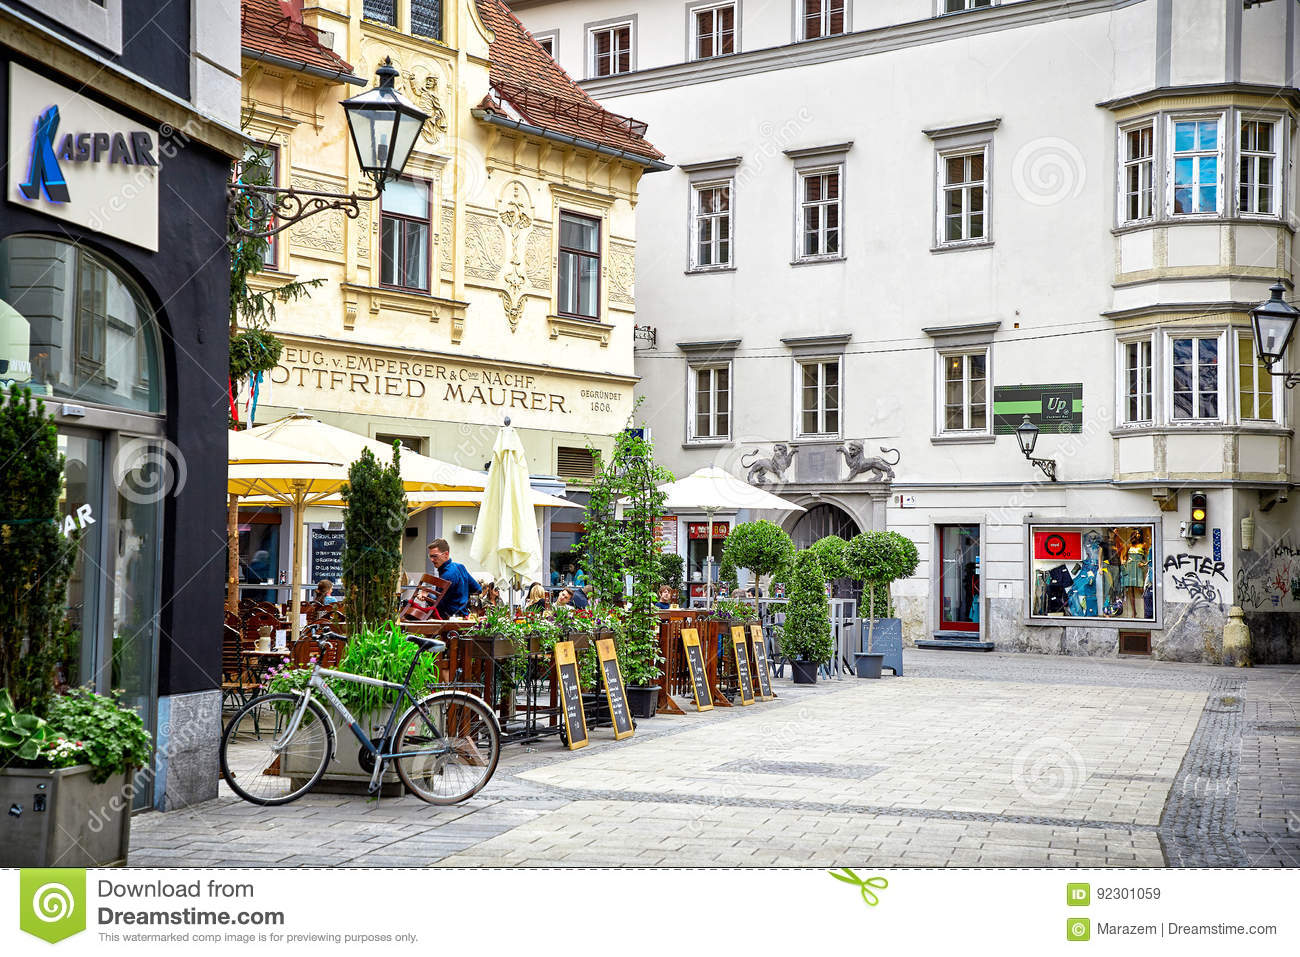 Street view of Graz, Austria